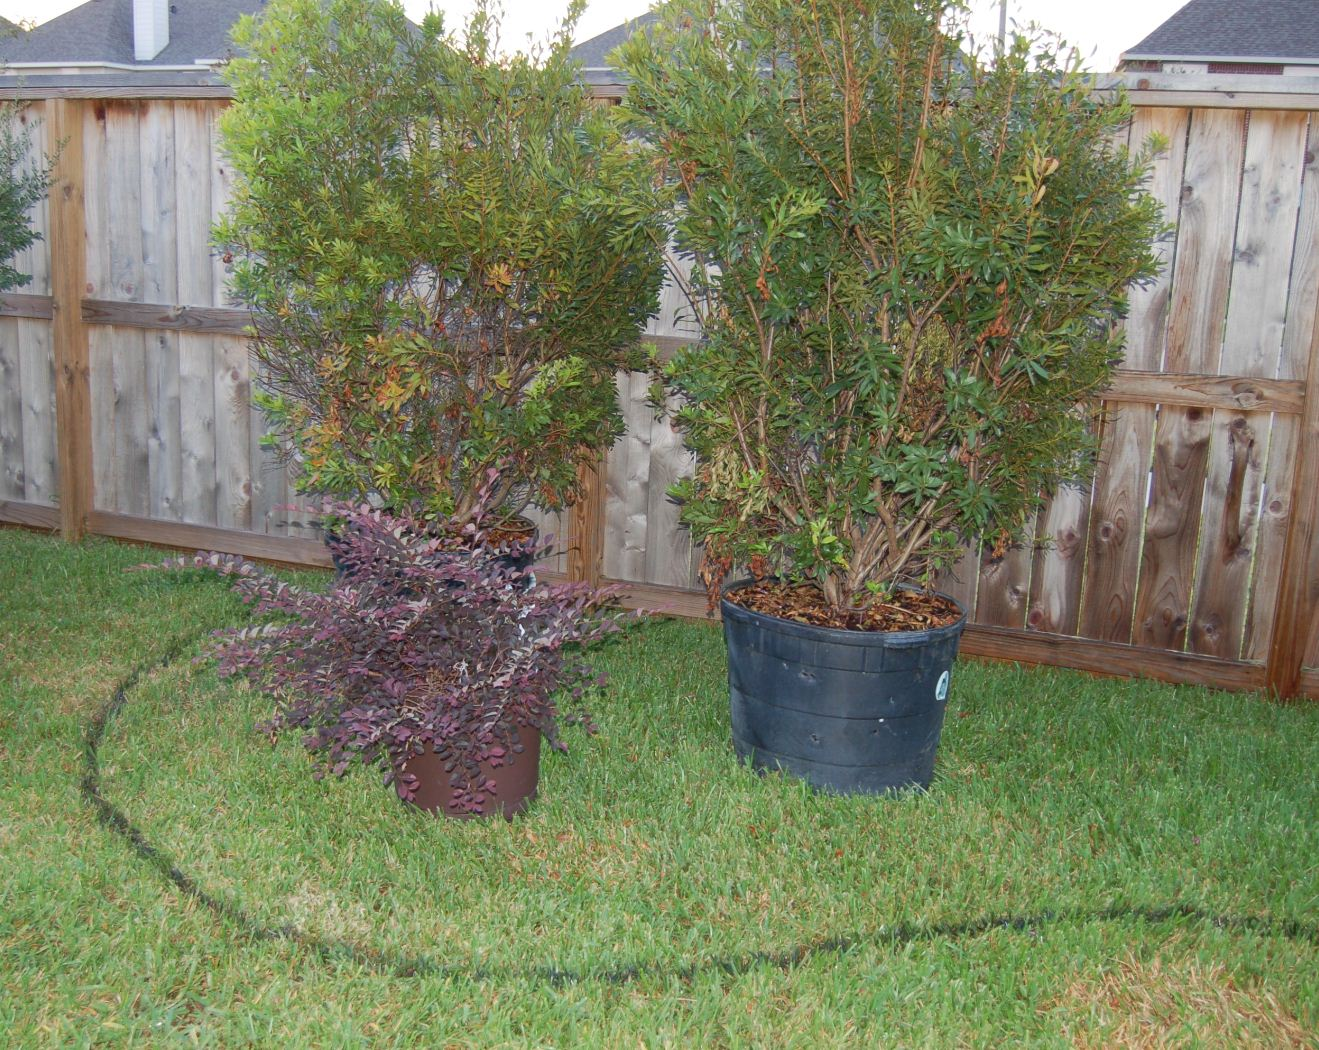 Centerpointe communicator landscaping made easy part 1 for Wax landscape